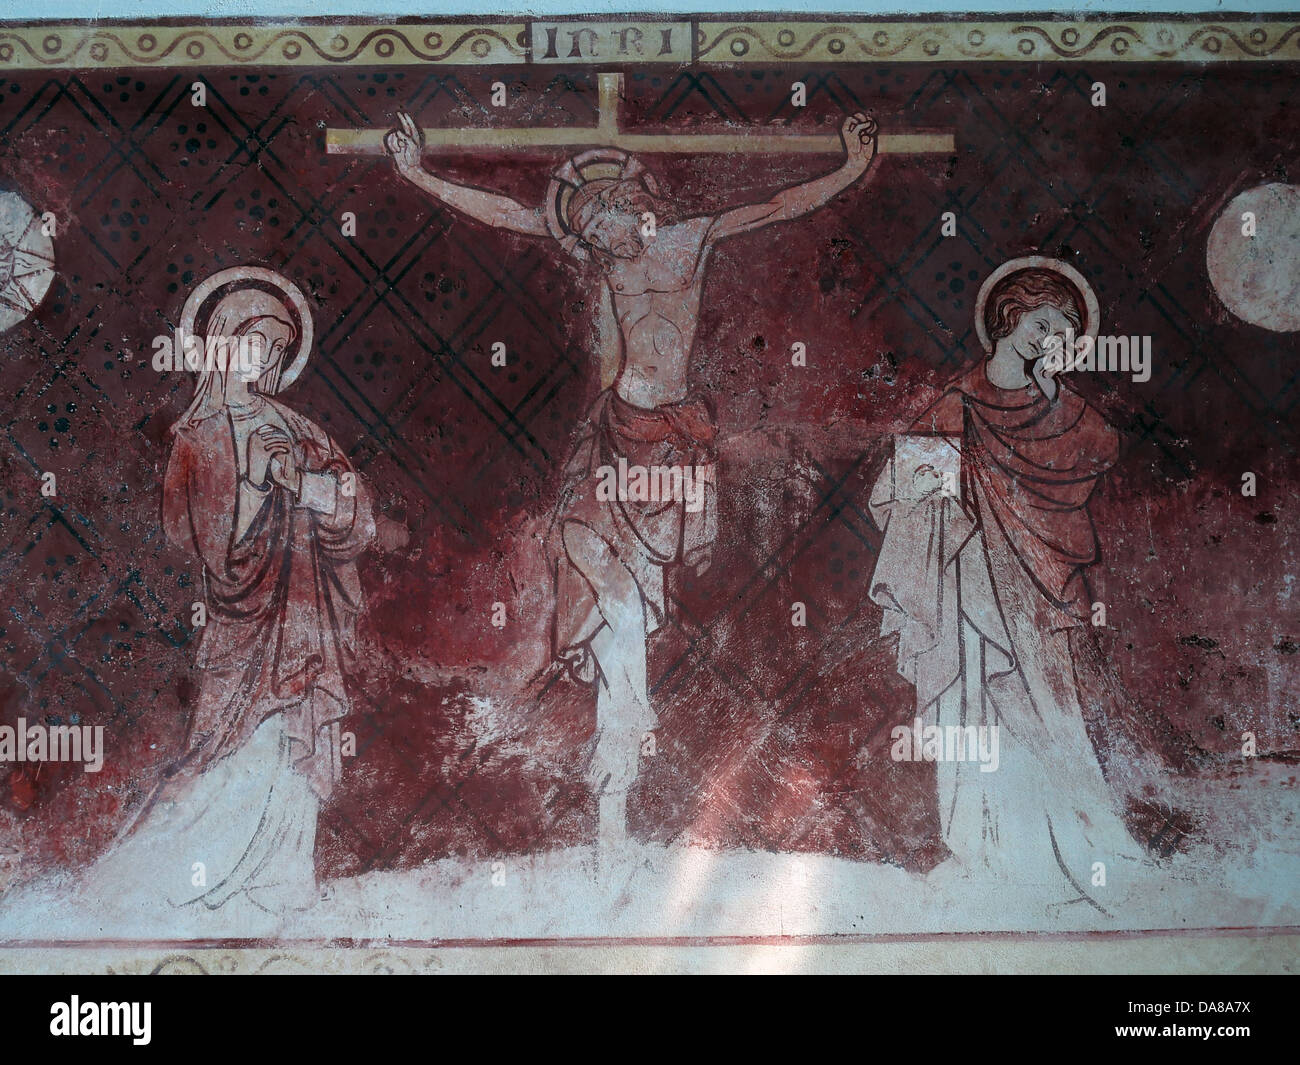 Wall art in Peoples chapel of St Peter & St Paul, parish church, Dorchester on Thames, England, UK - Stock Image